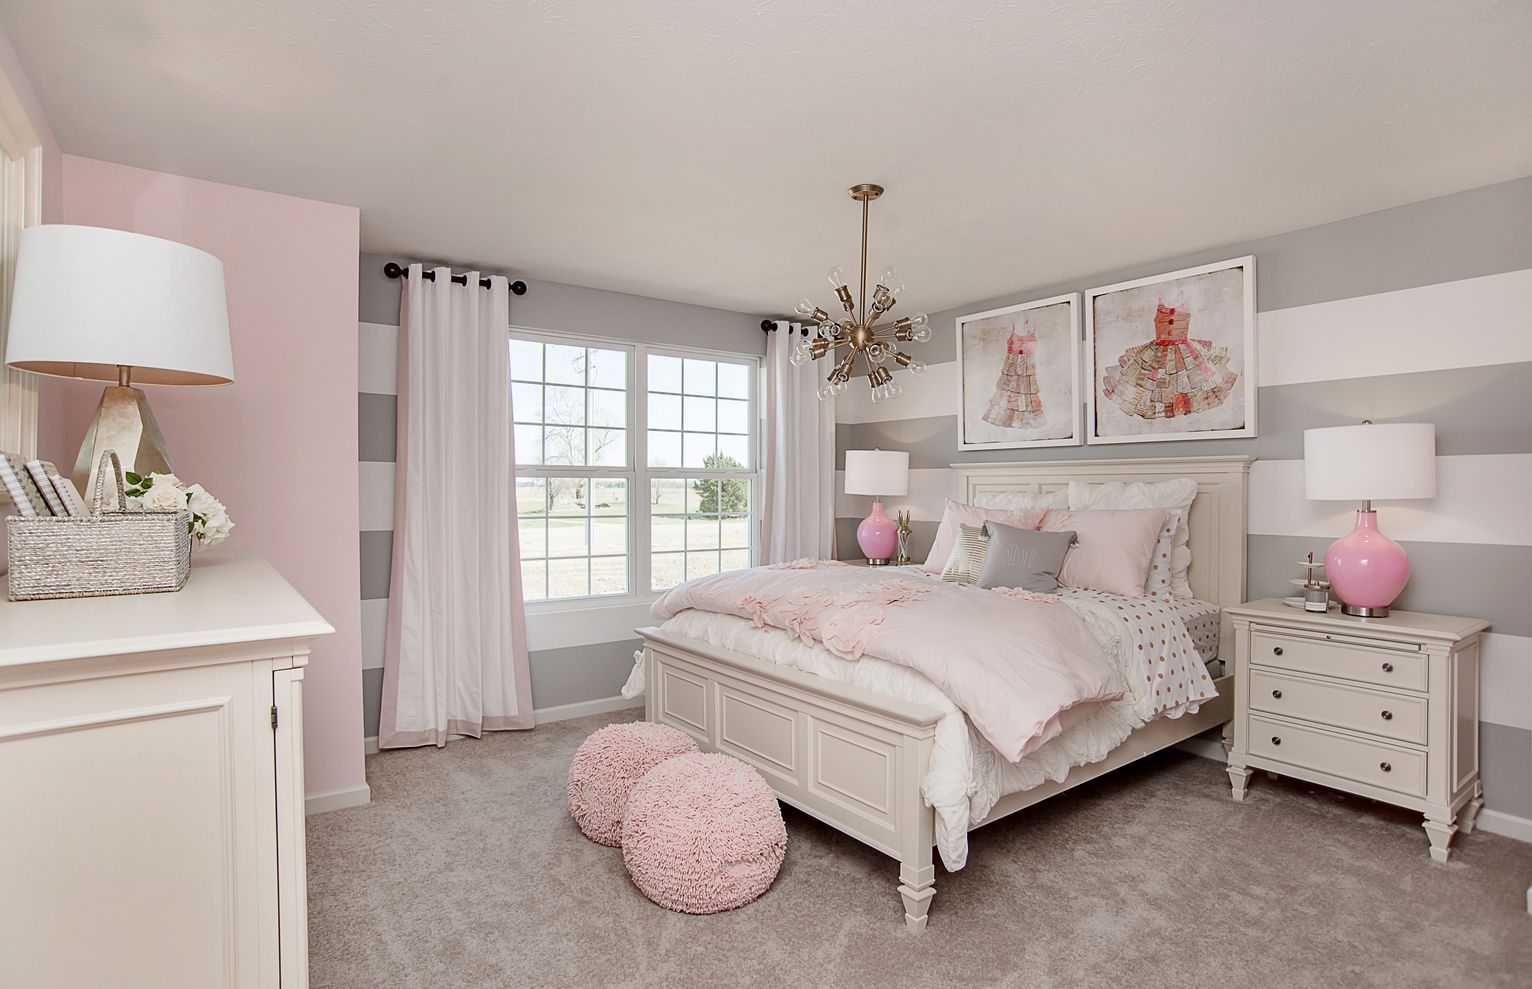 69 cute apartment bedroom ideas you will love round decor for Cute bedroom accessories